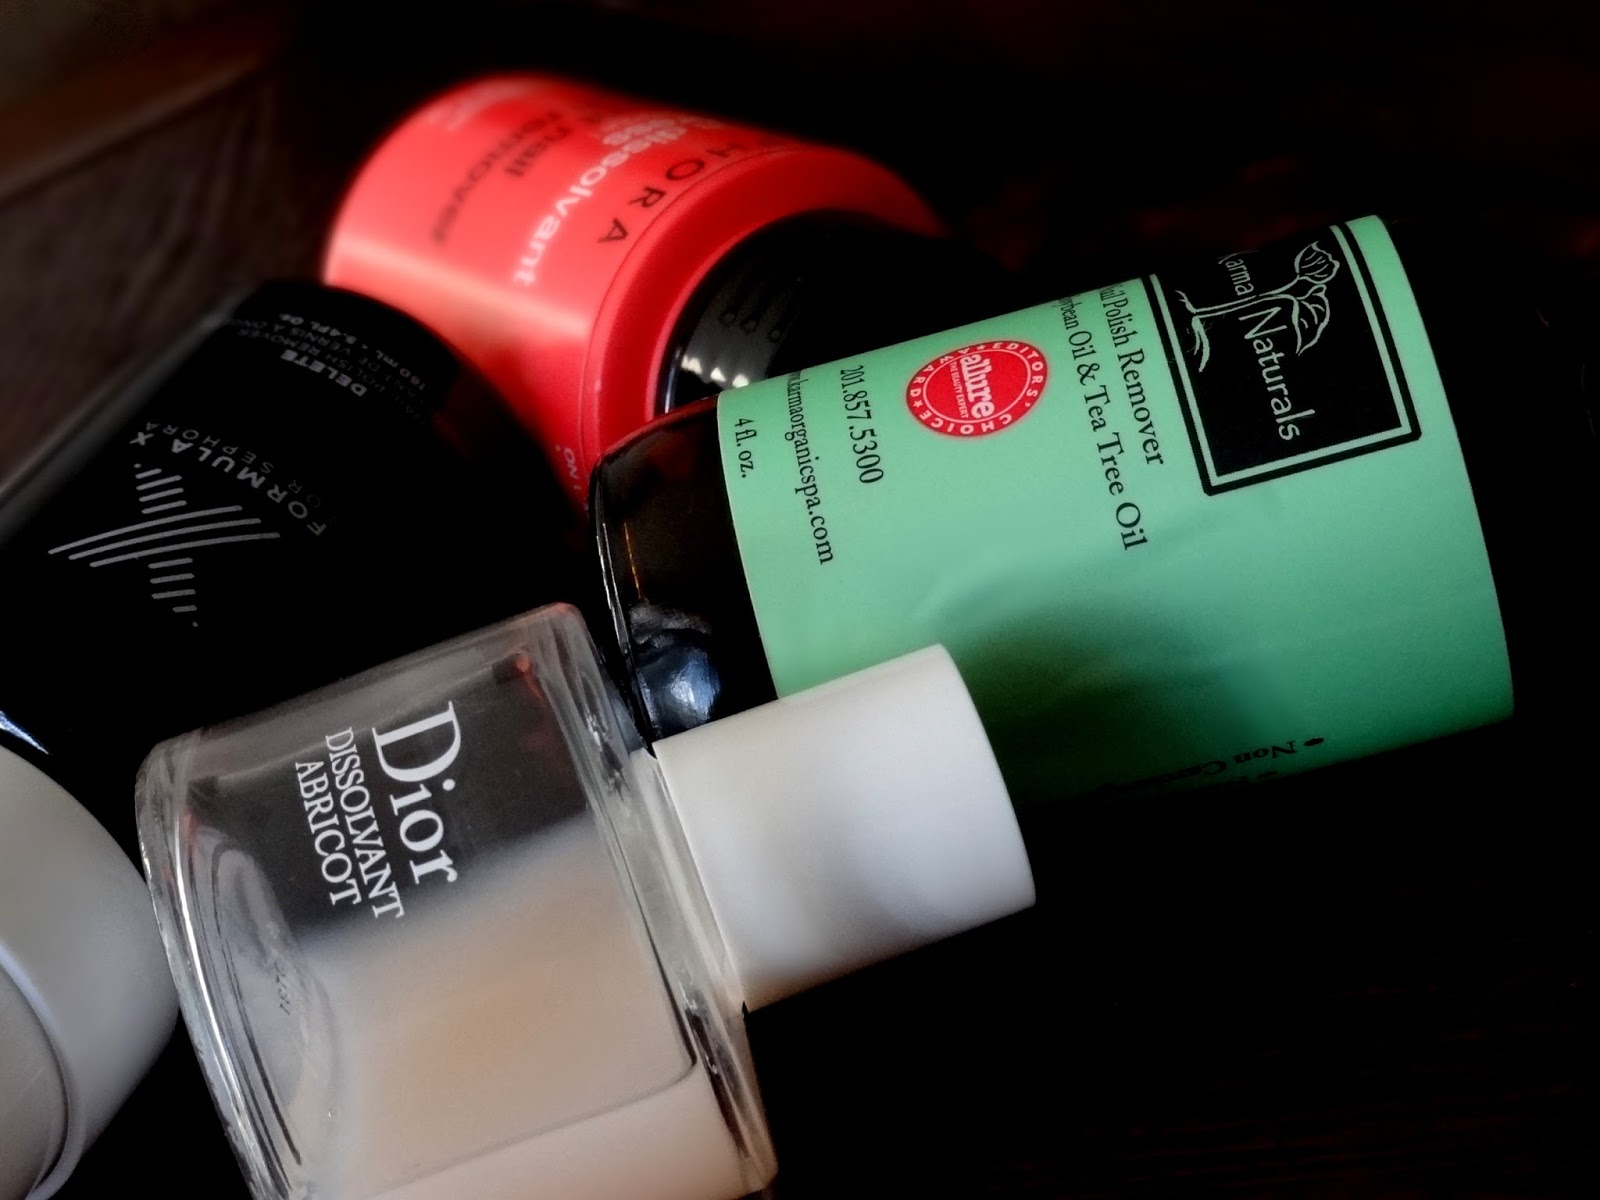 Nail Polish Removers Roundup - Hits and Misses